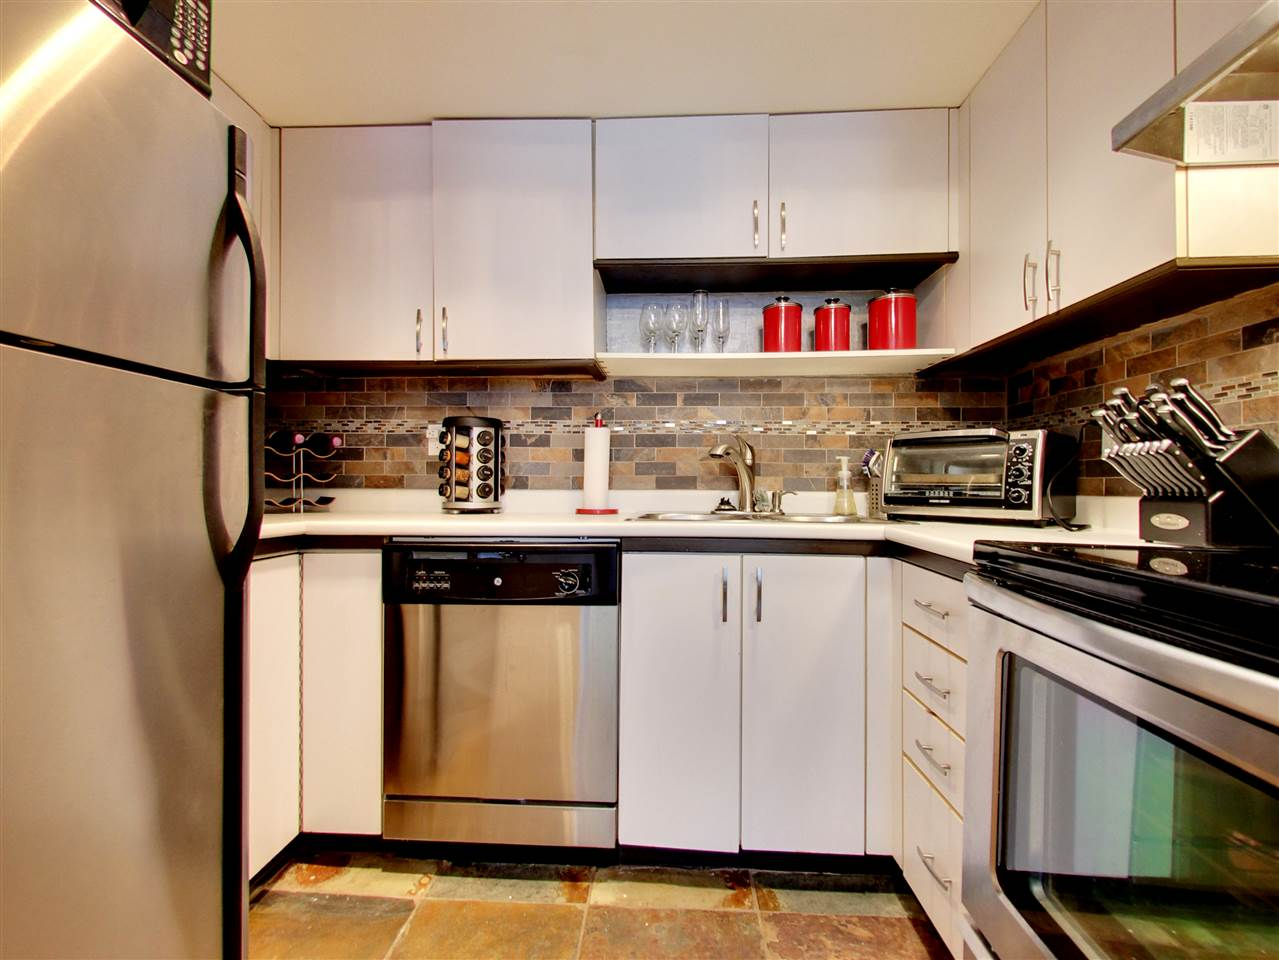 Photo 5: 2309 ALDER STREET in Vancouver: Fairview VW Condo for sale (Vancouver West)  : MLS(r) # R2115607